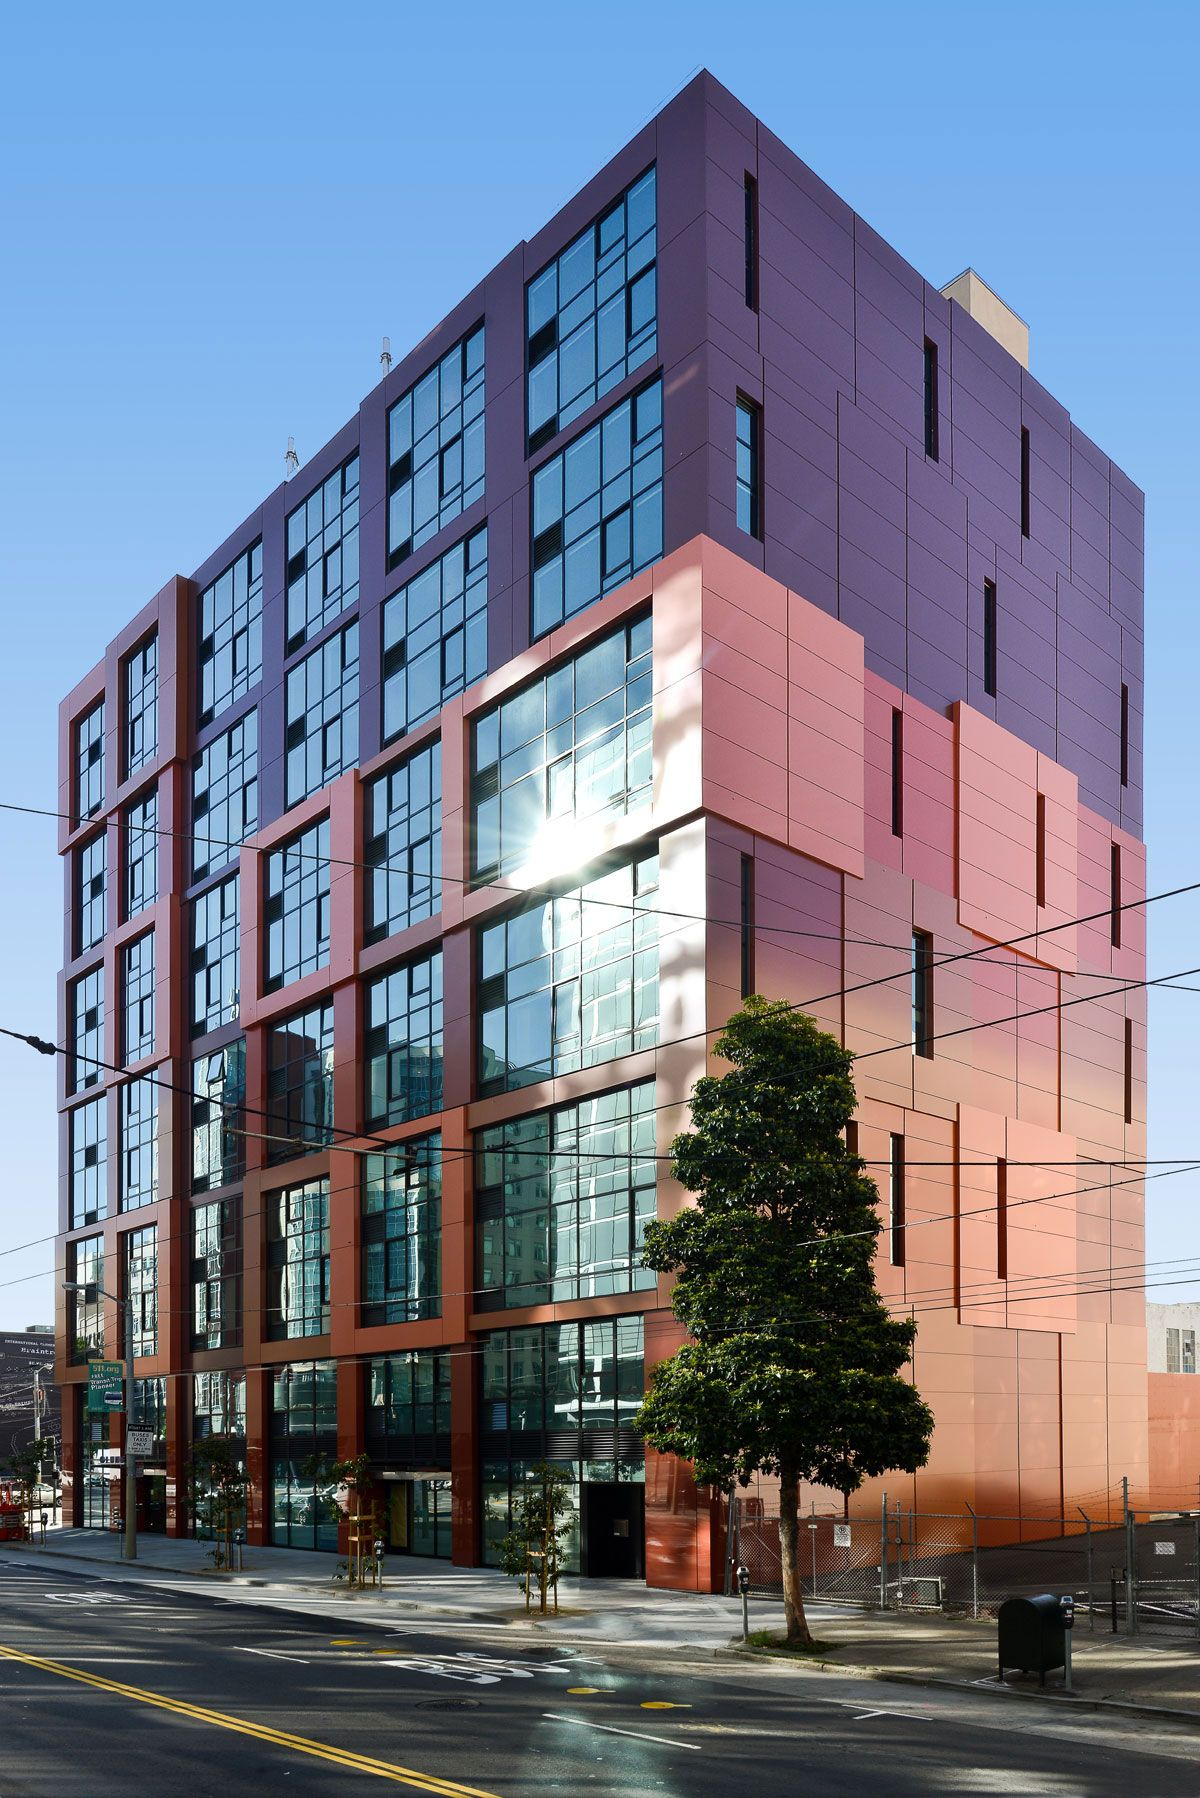 Olume apartments arquitectonica keith panel systems alucobond olume apartments arquitectonica keith panel systems alucobond plus natural leed silver certification 1betcityfo Image collections